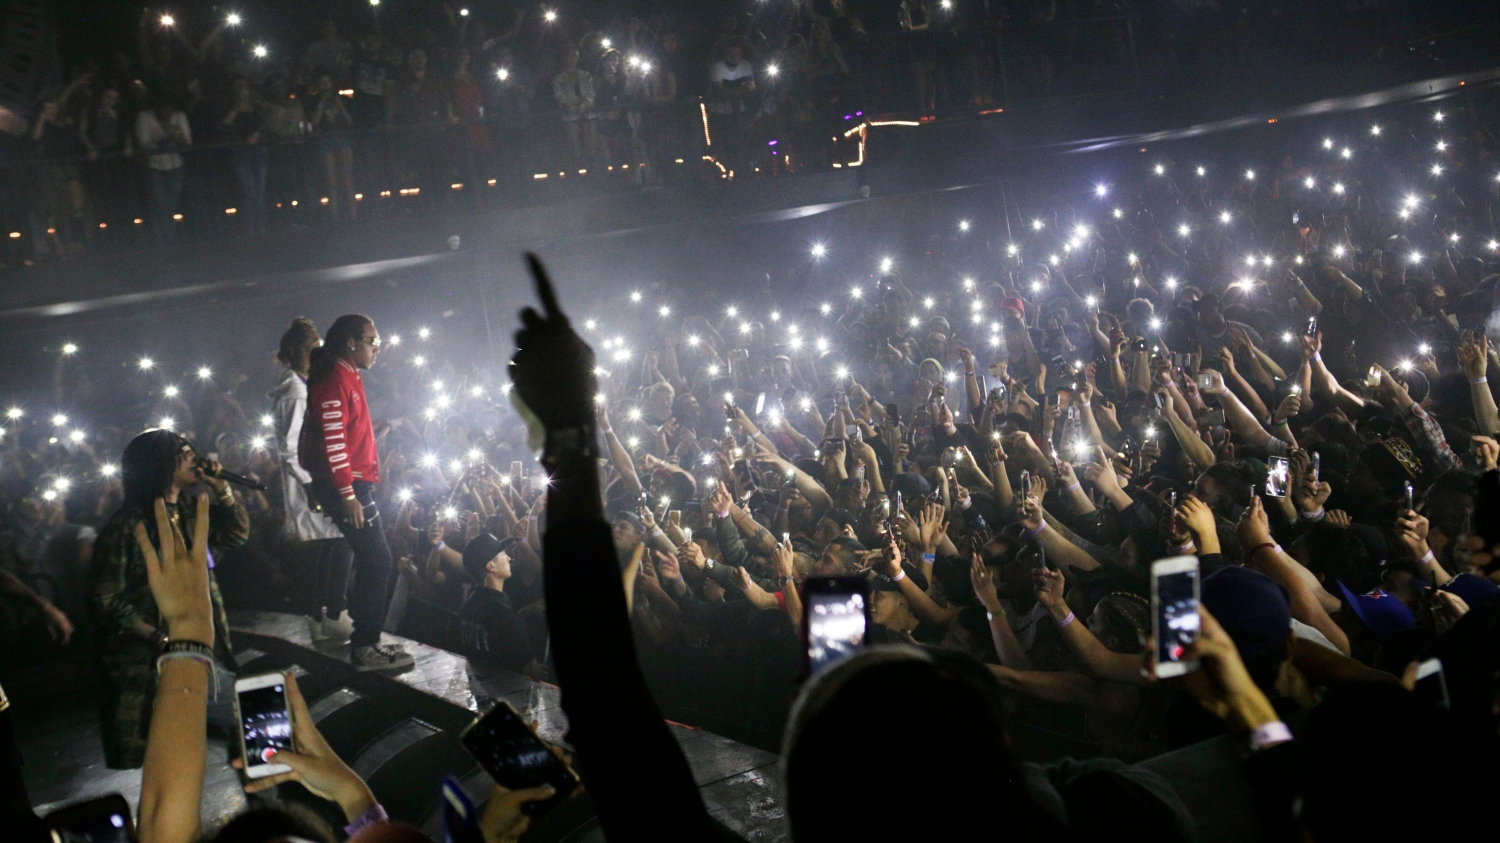 Migos Performs At The Observatory